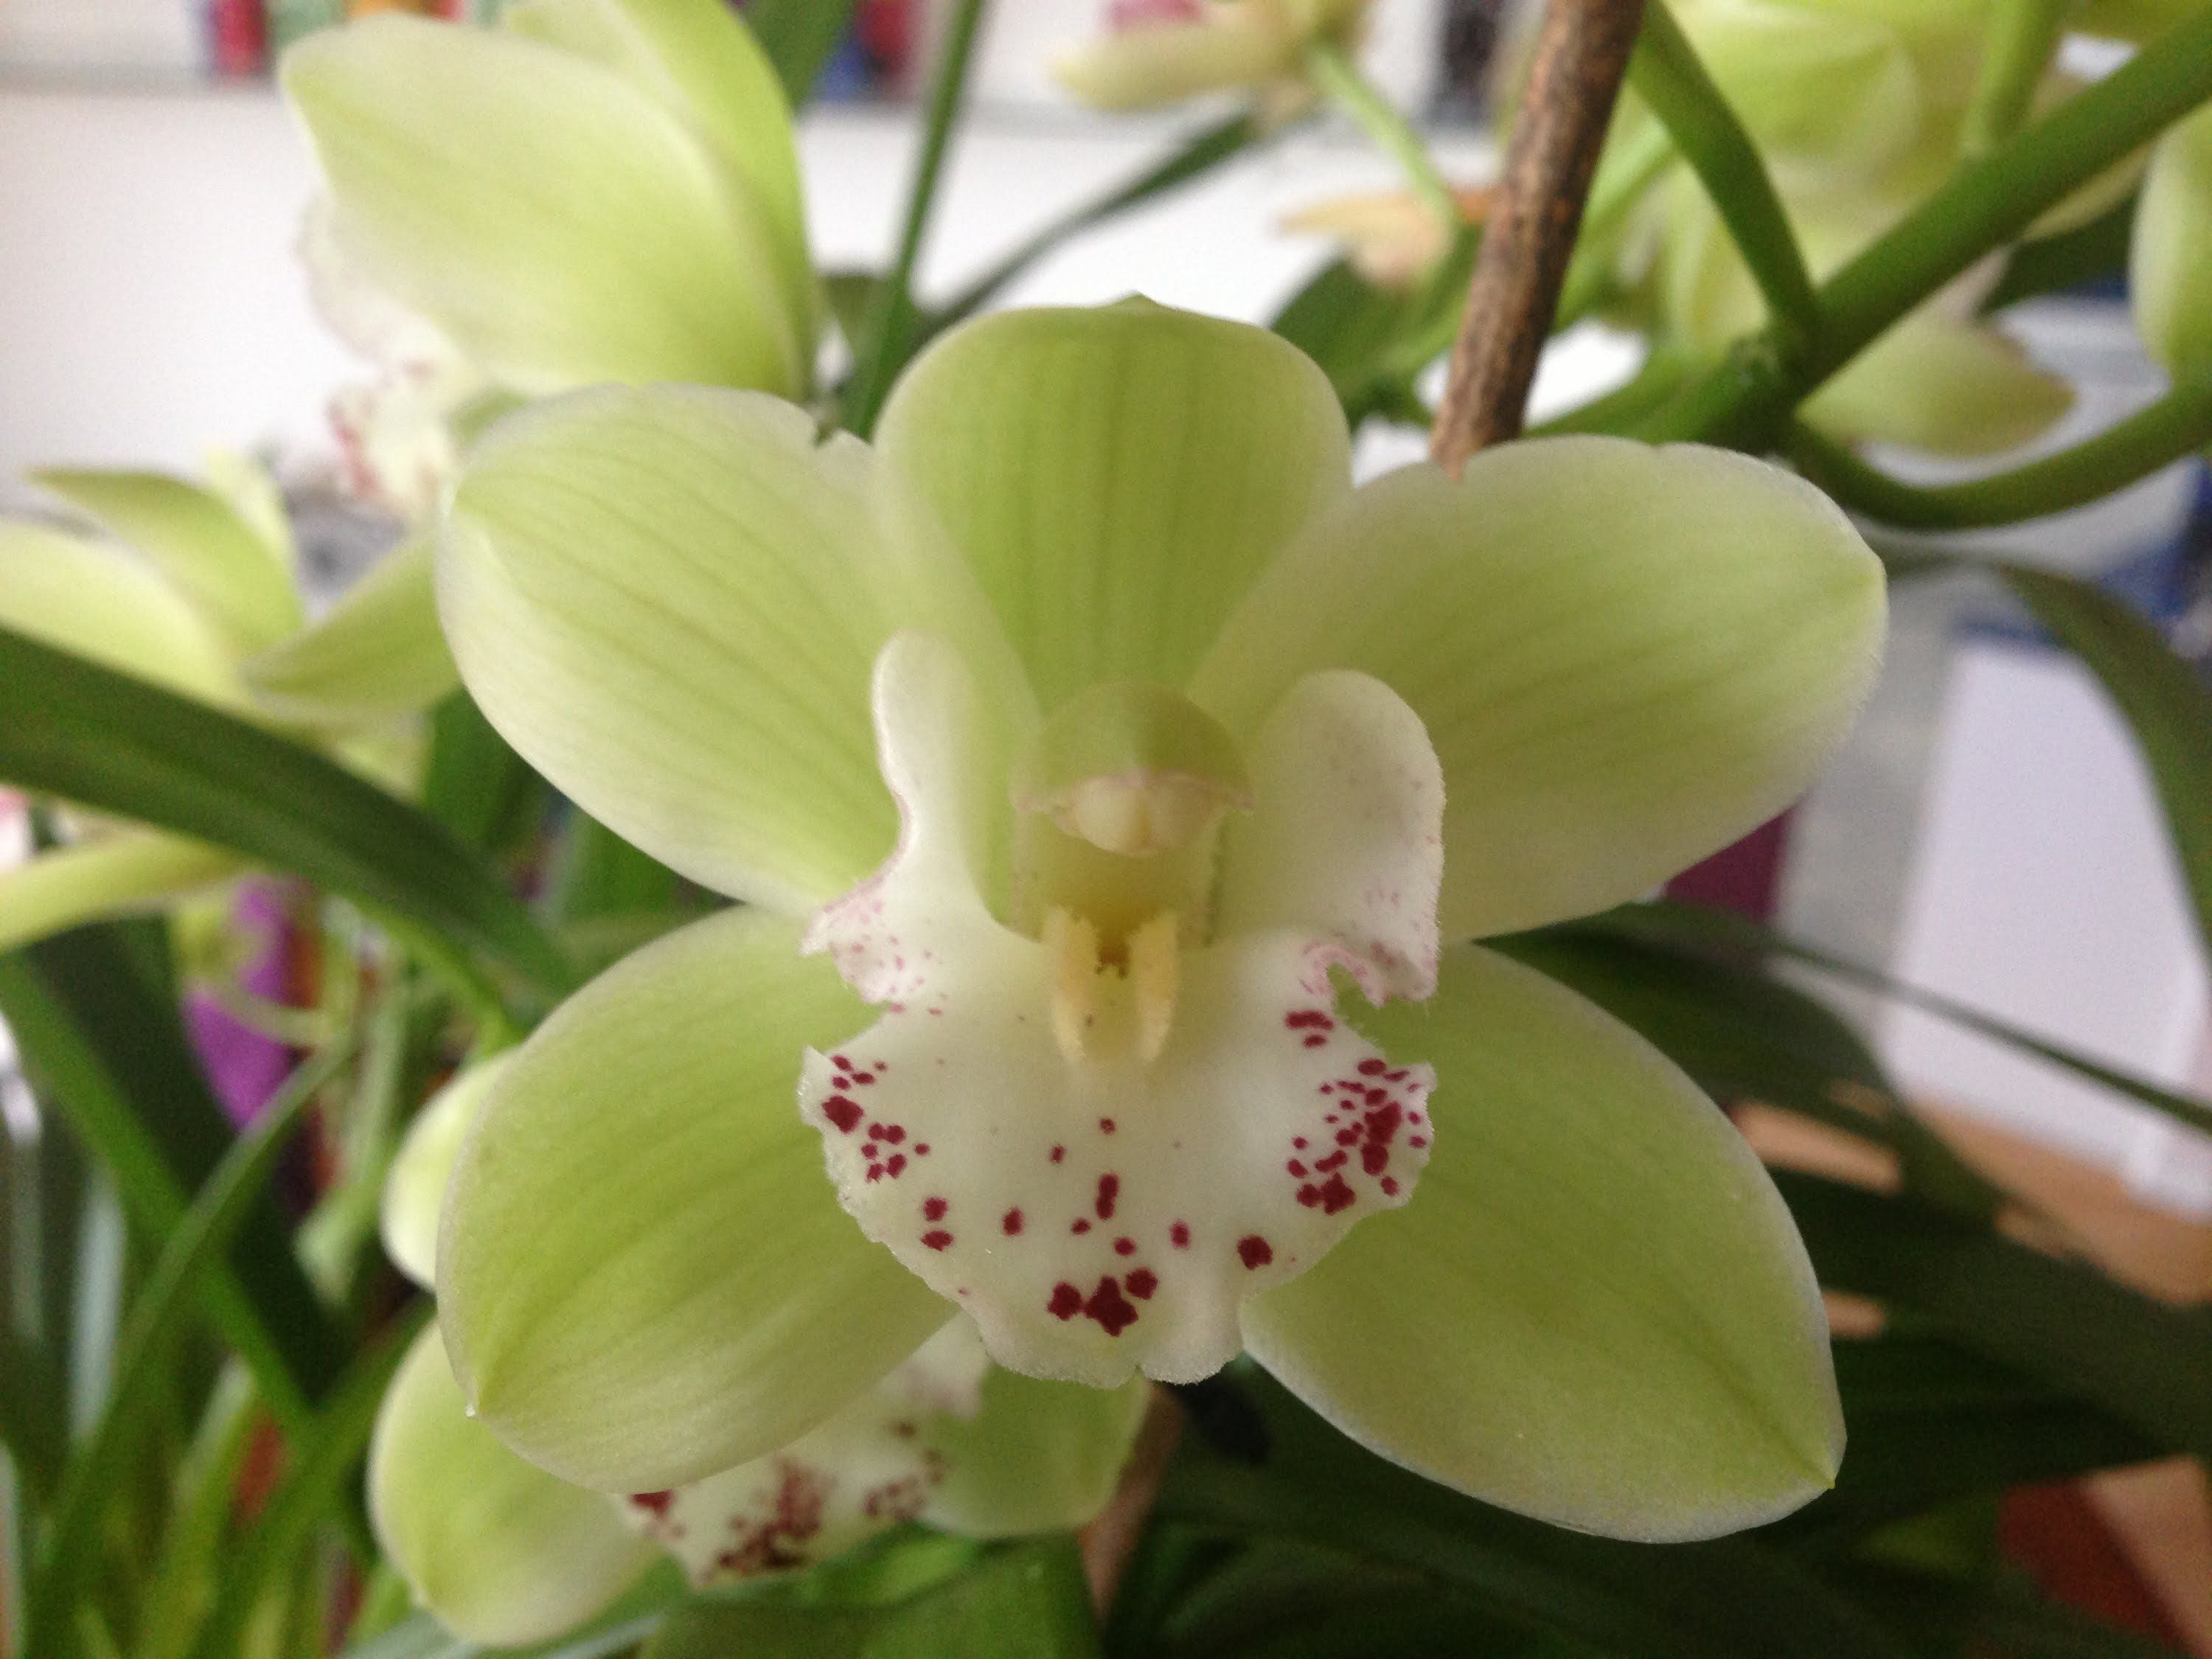 Easy Cymbidium Orchid Care Culture And Re Bloom Tips Cymbidium Orchids Care Orchid Care Cymbidium Orchids